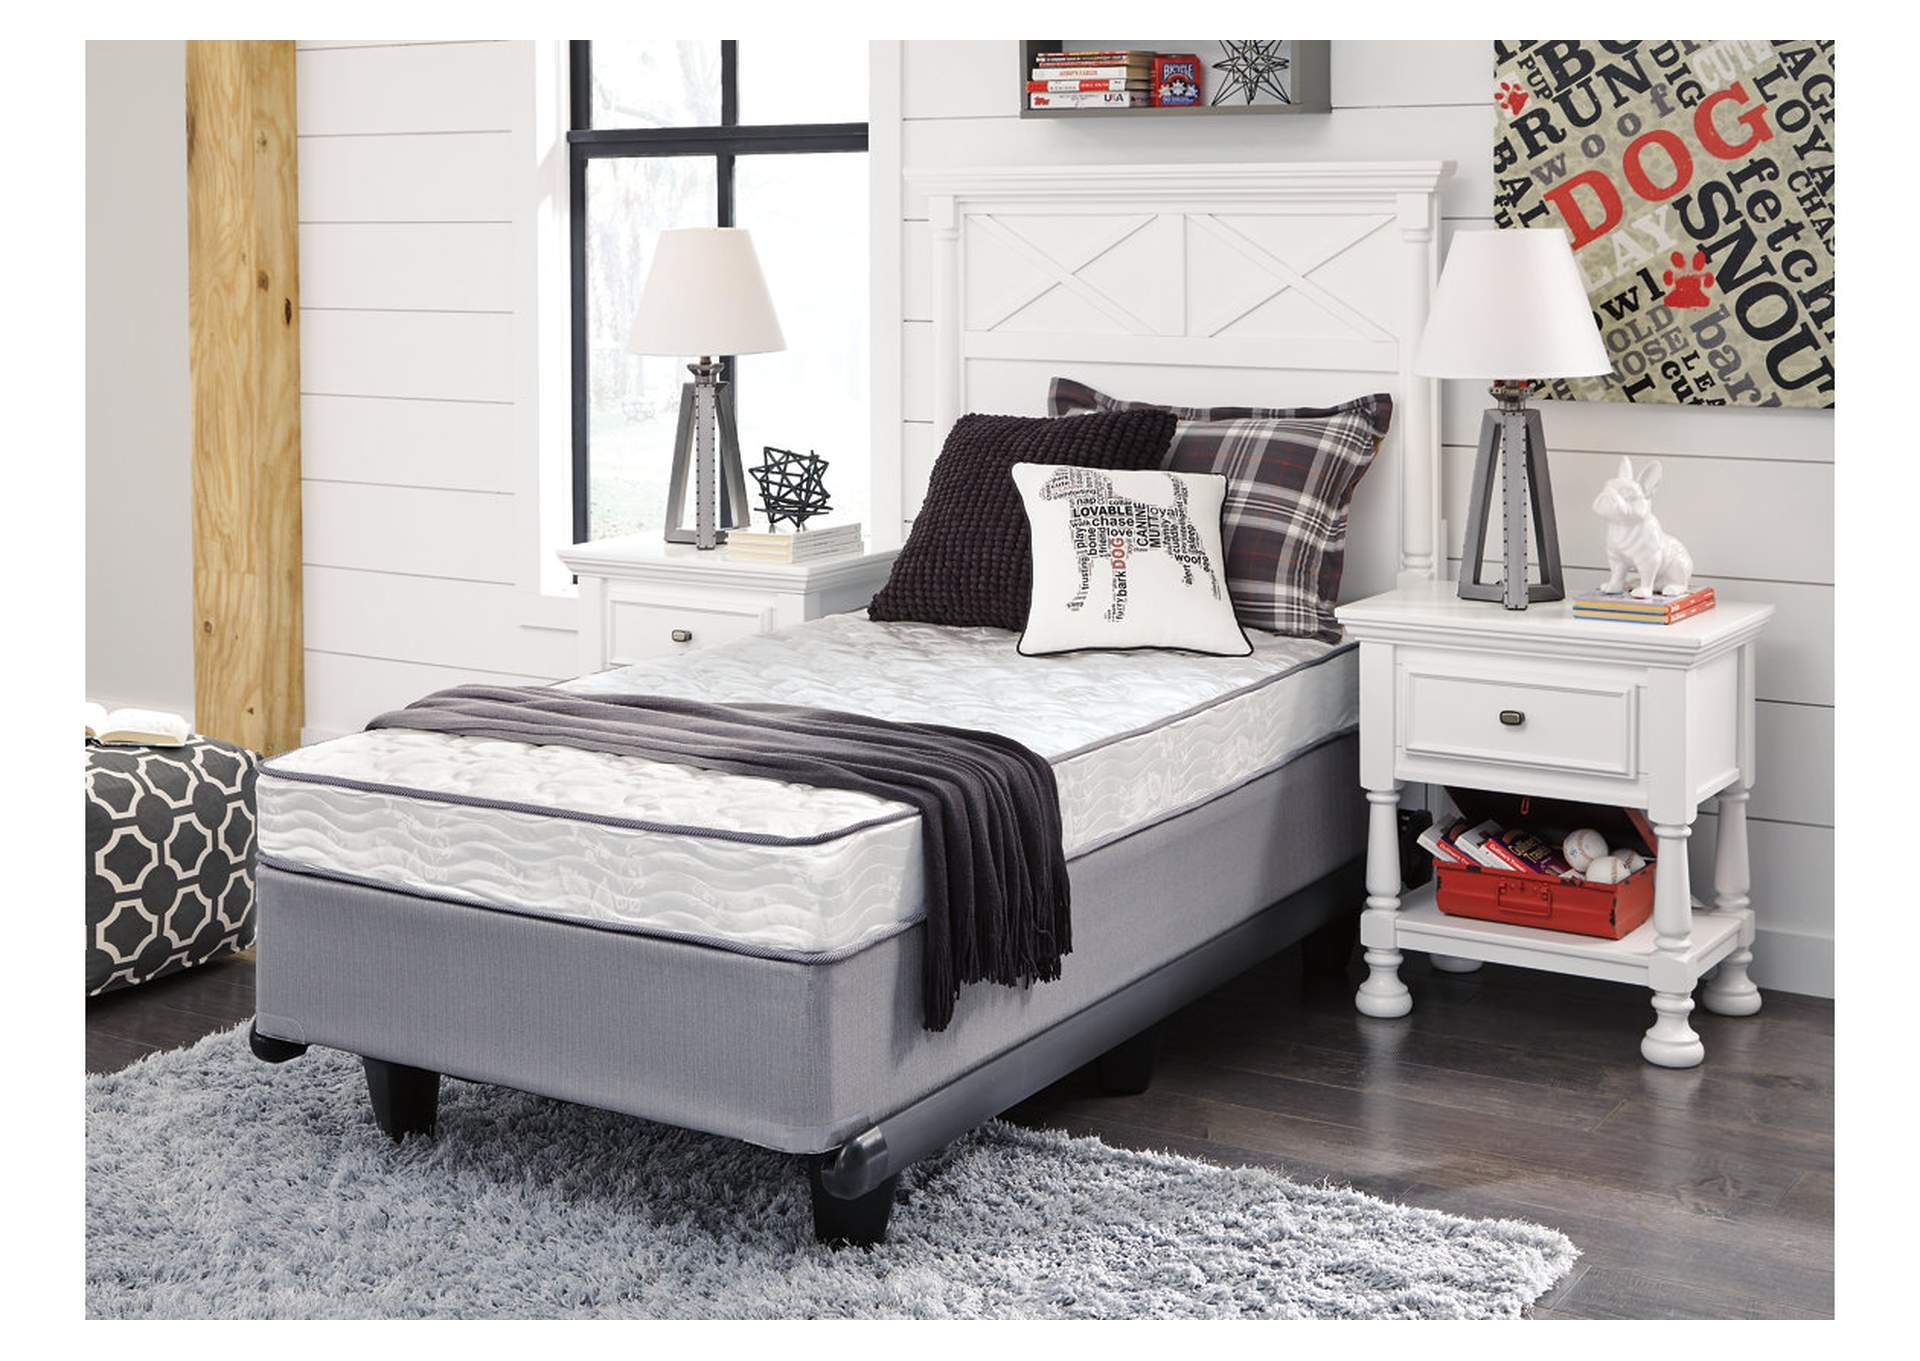 6 Inch Bonell Twin Mattress,Sierra Sleep by Ashley